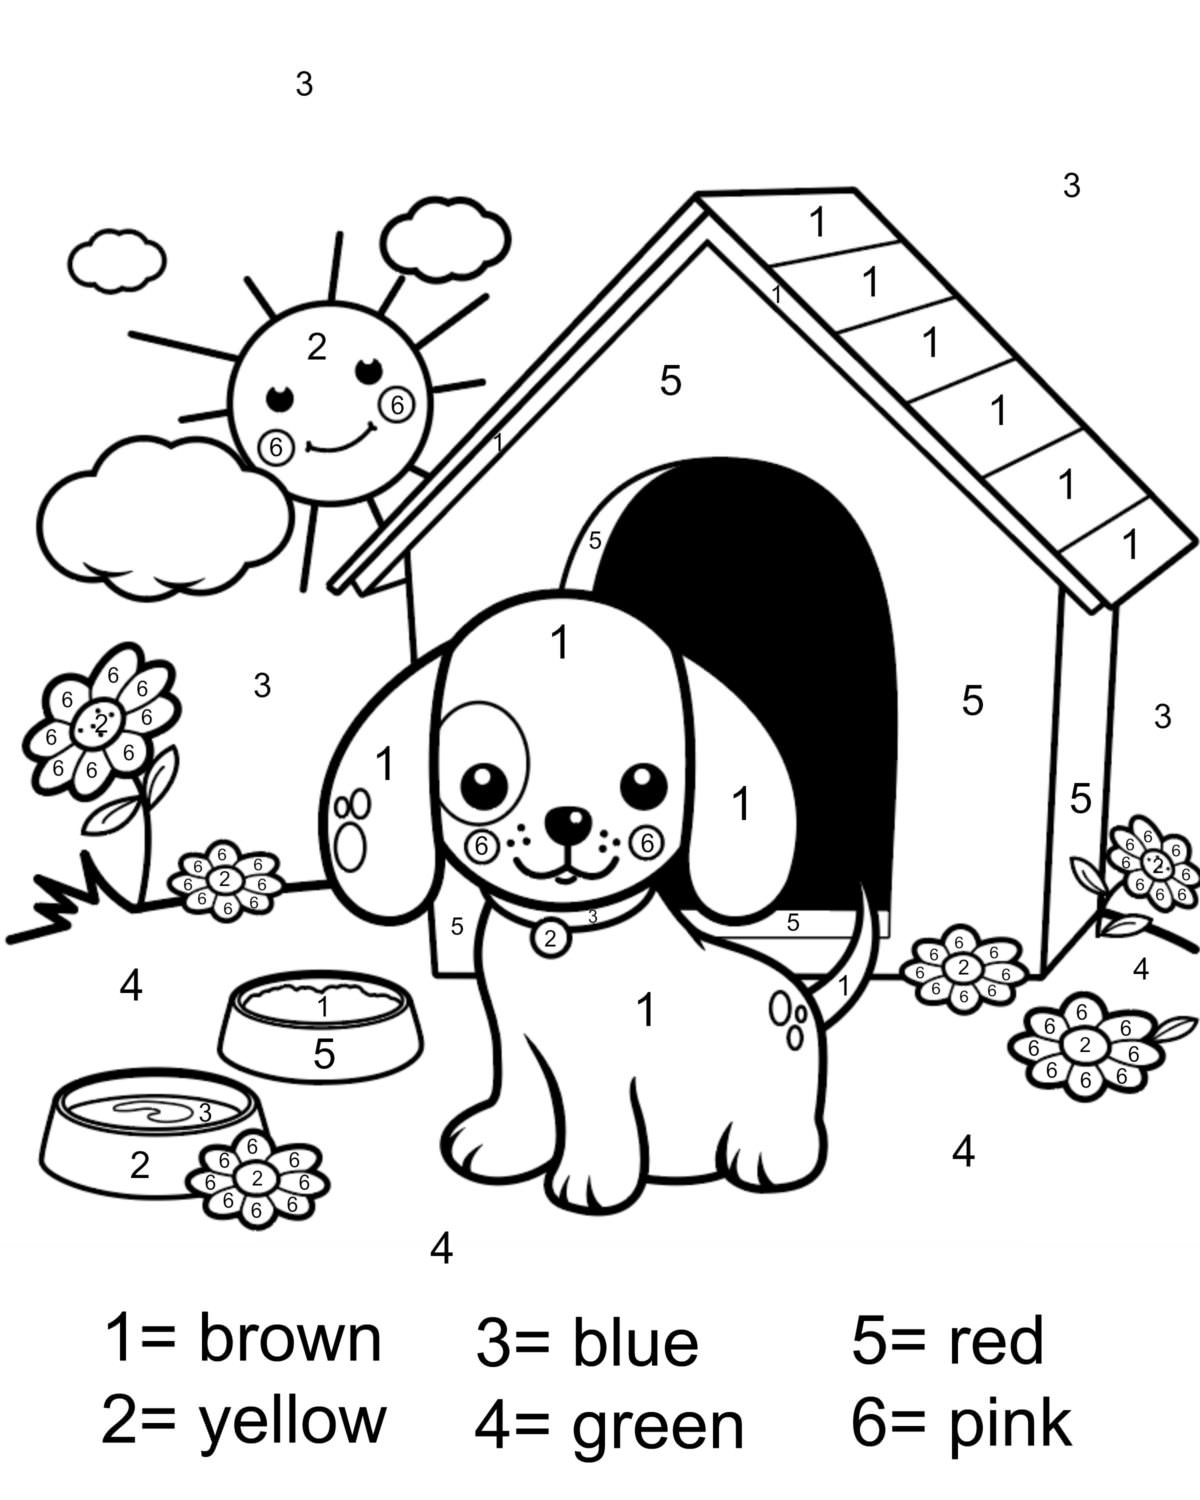 color by number coloring pages free - color number coloring page free printable